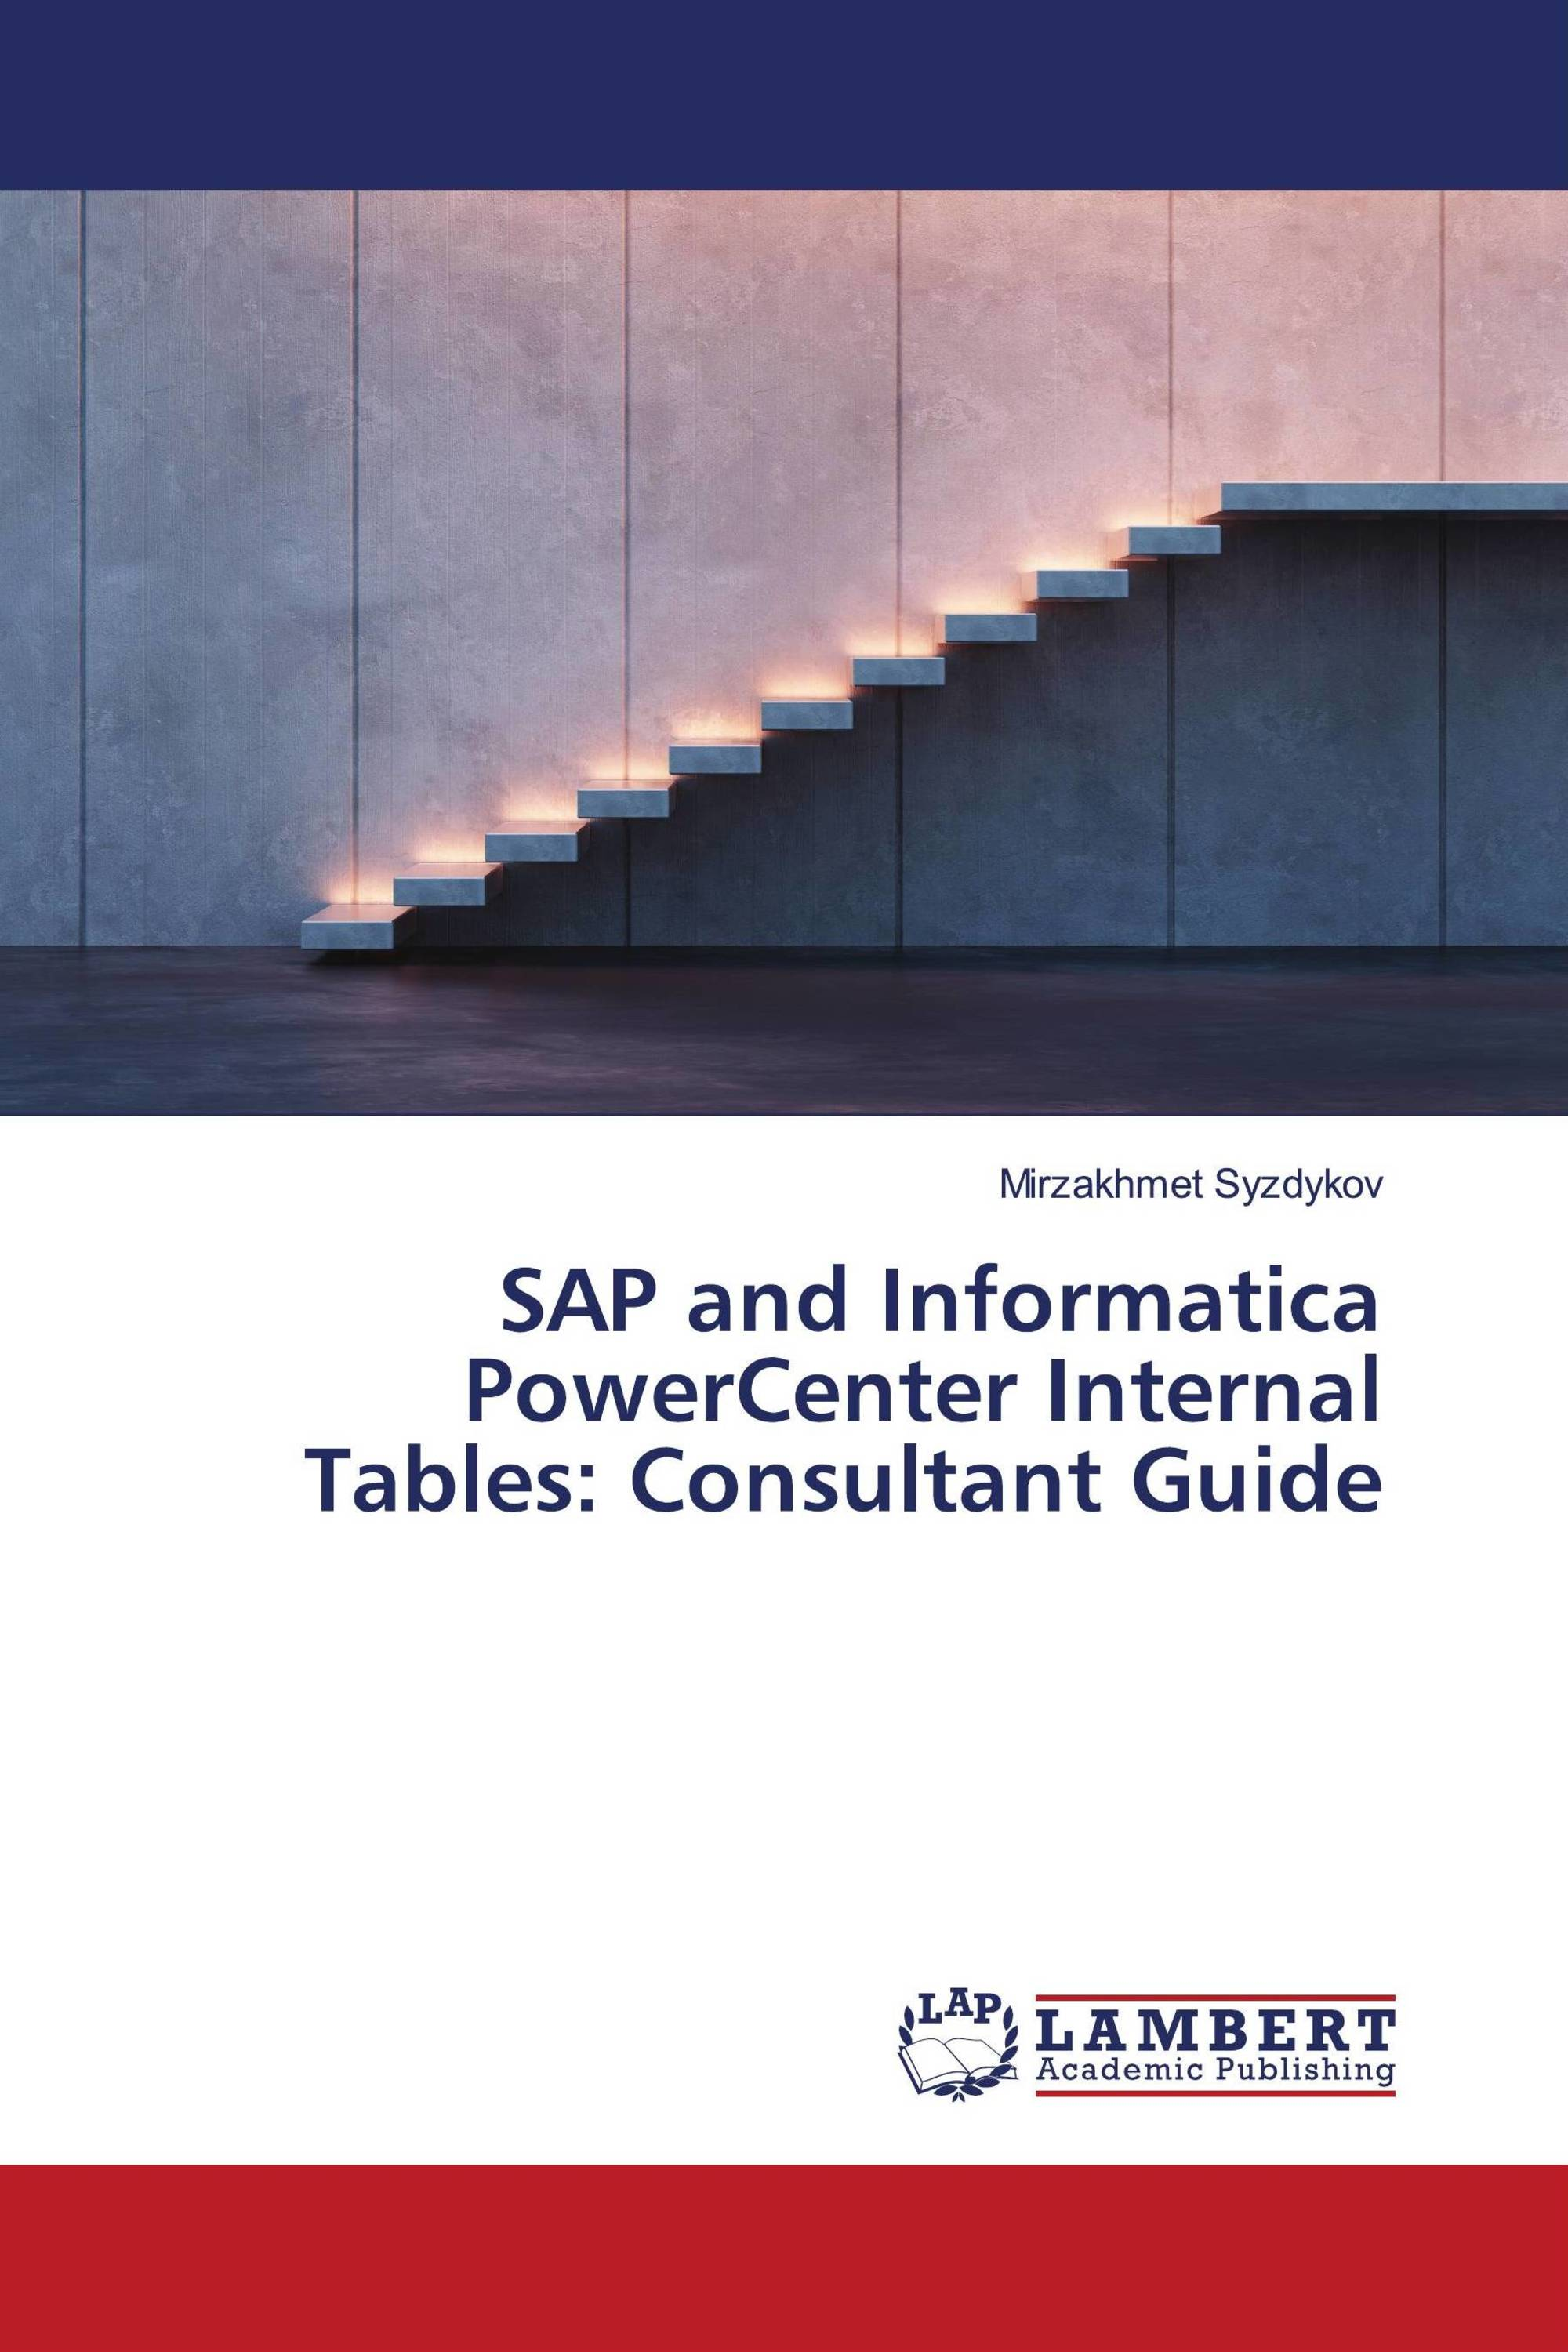 sap and informatica powercenter internal tables consultant guide rh lap publishing com informatica powercenter administrator guide 10.1 informatica powercenter installation guide